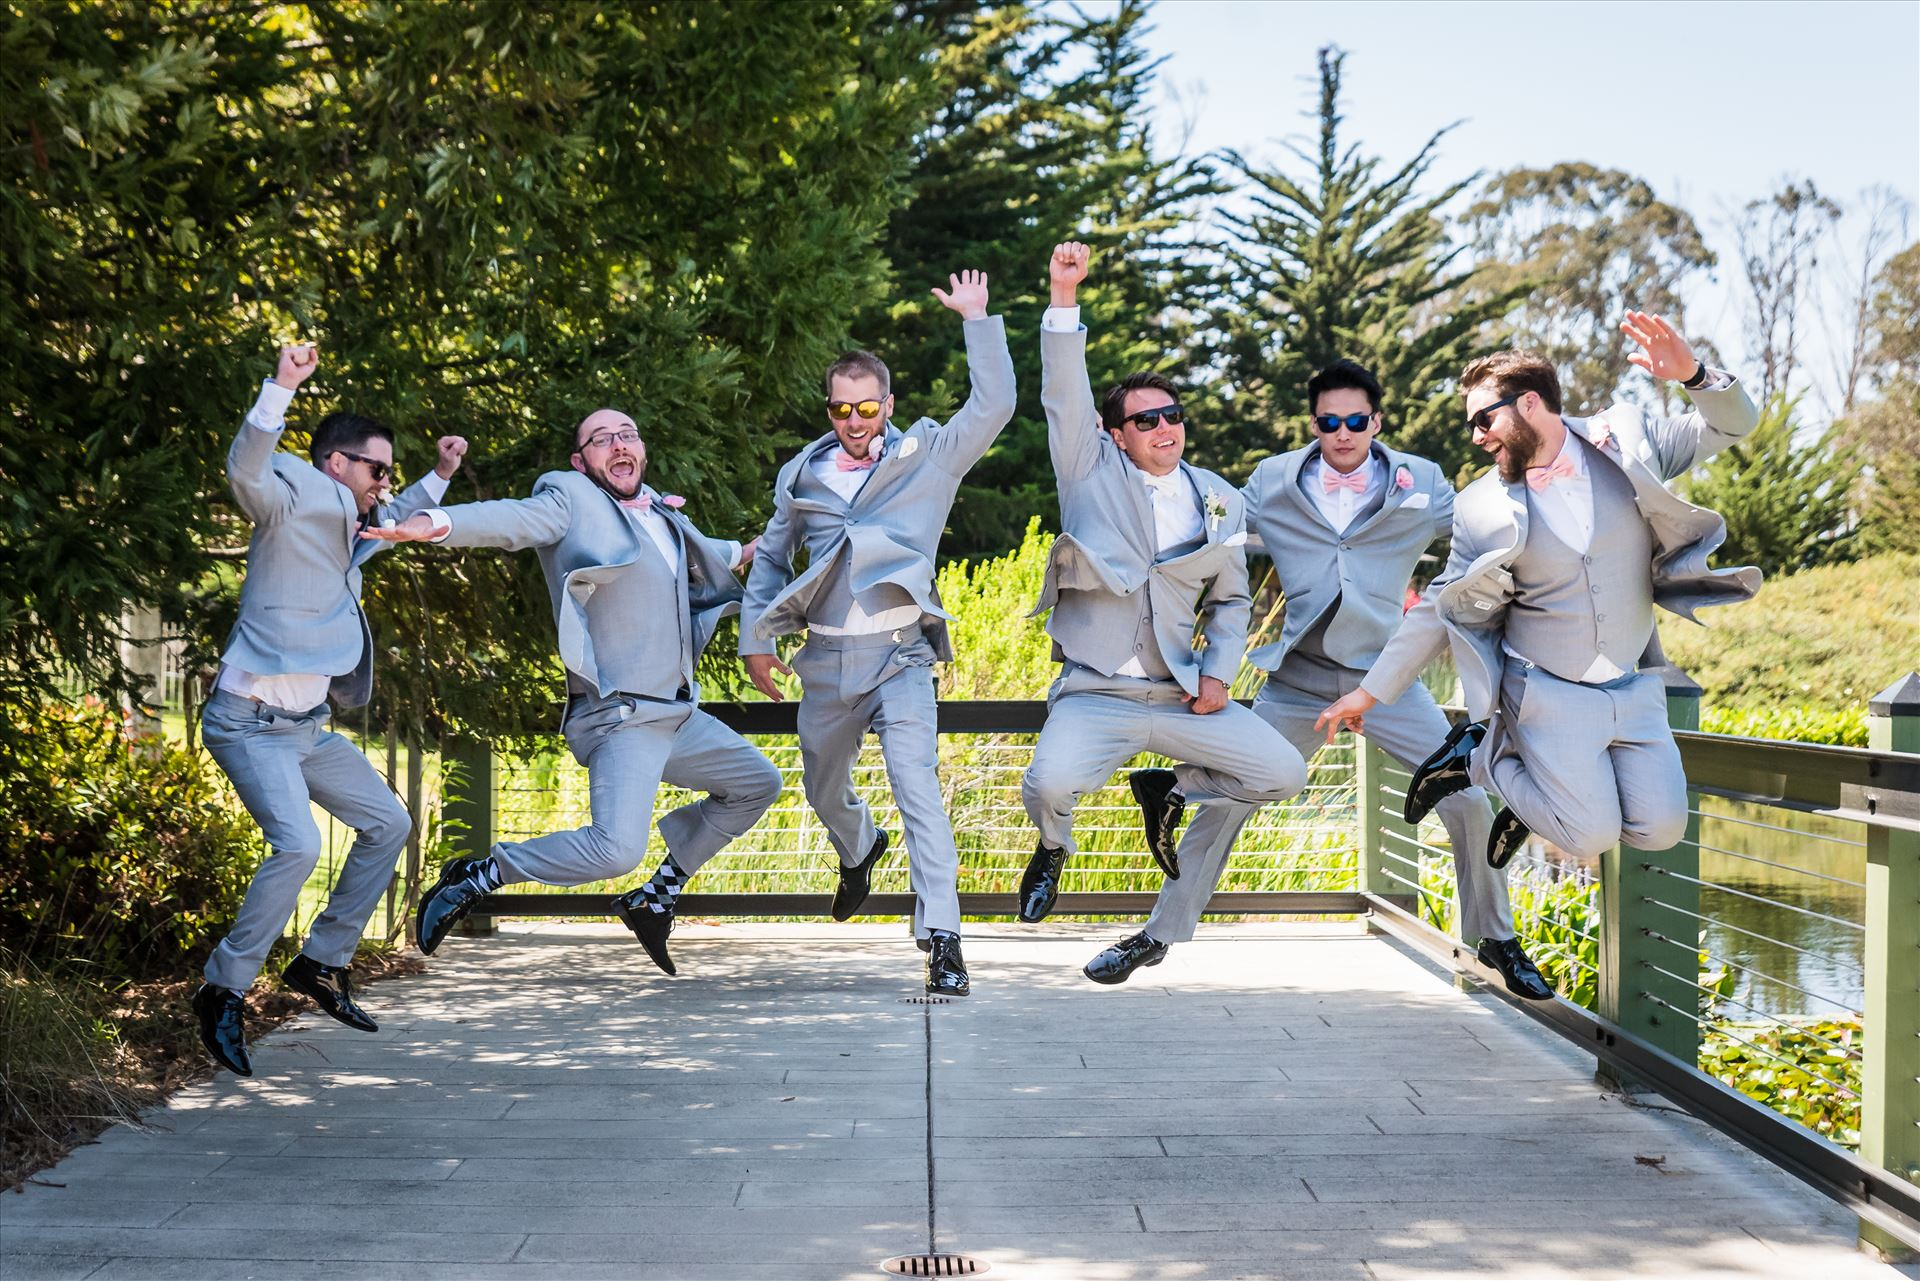 SP Gallery-0181.JPG - Cypress Ridge Pavilion Wedding Photography by Mirror's Edge Photography in Arroyo Grande California.  Groomsmen jumping by Sarah Williams